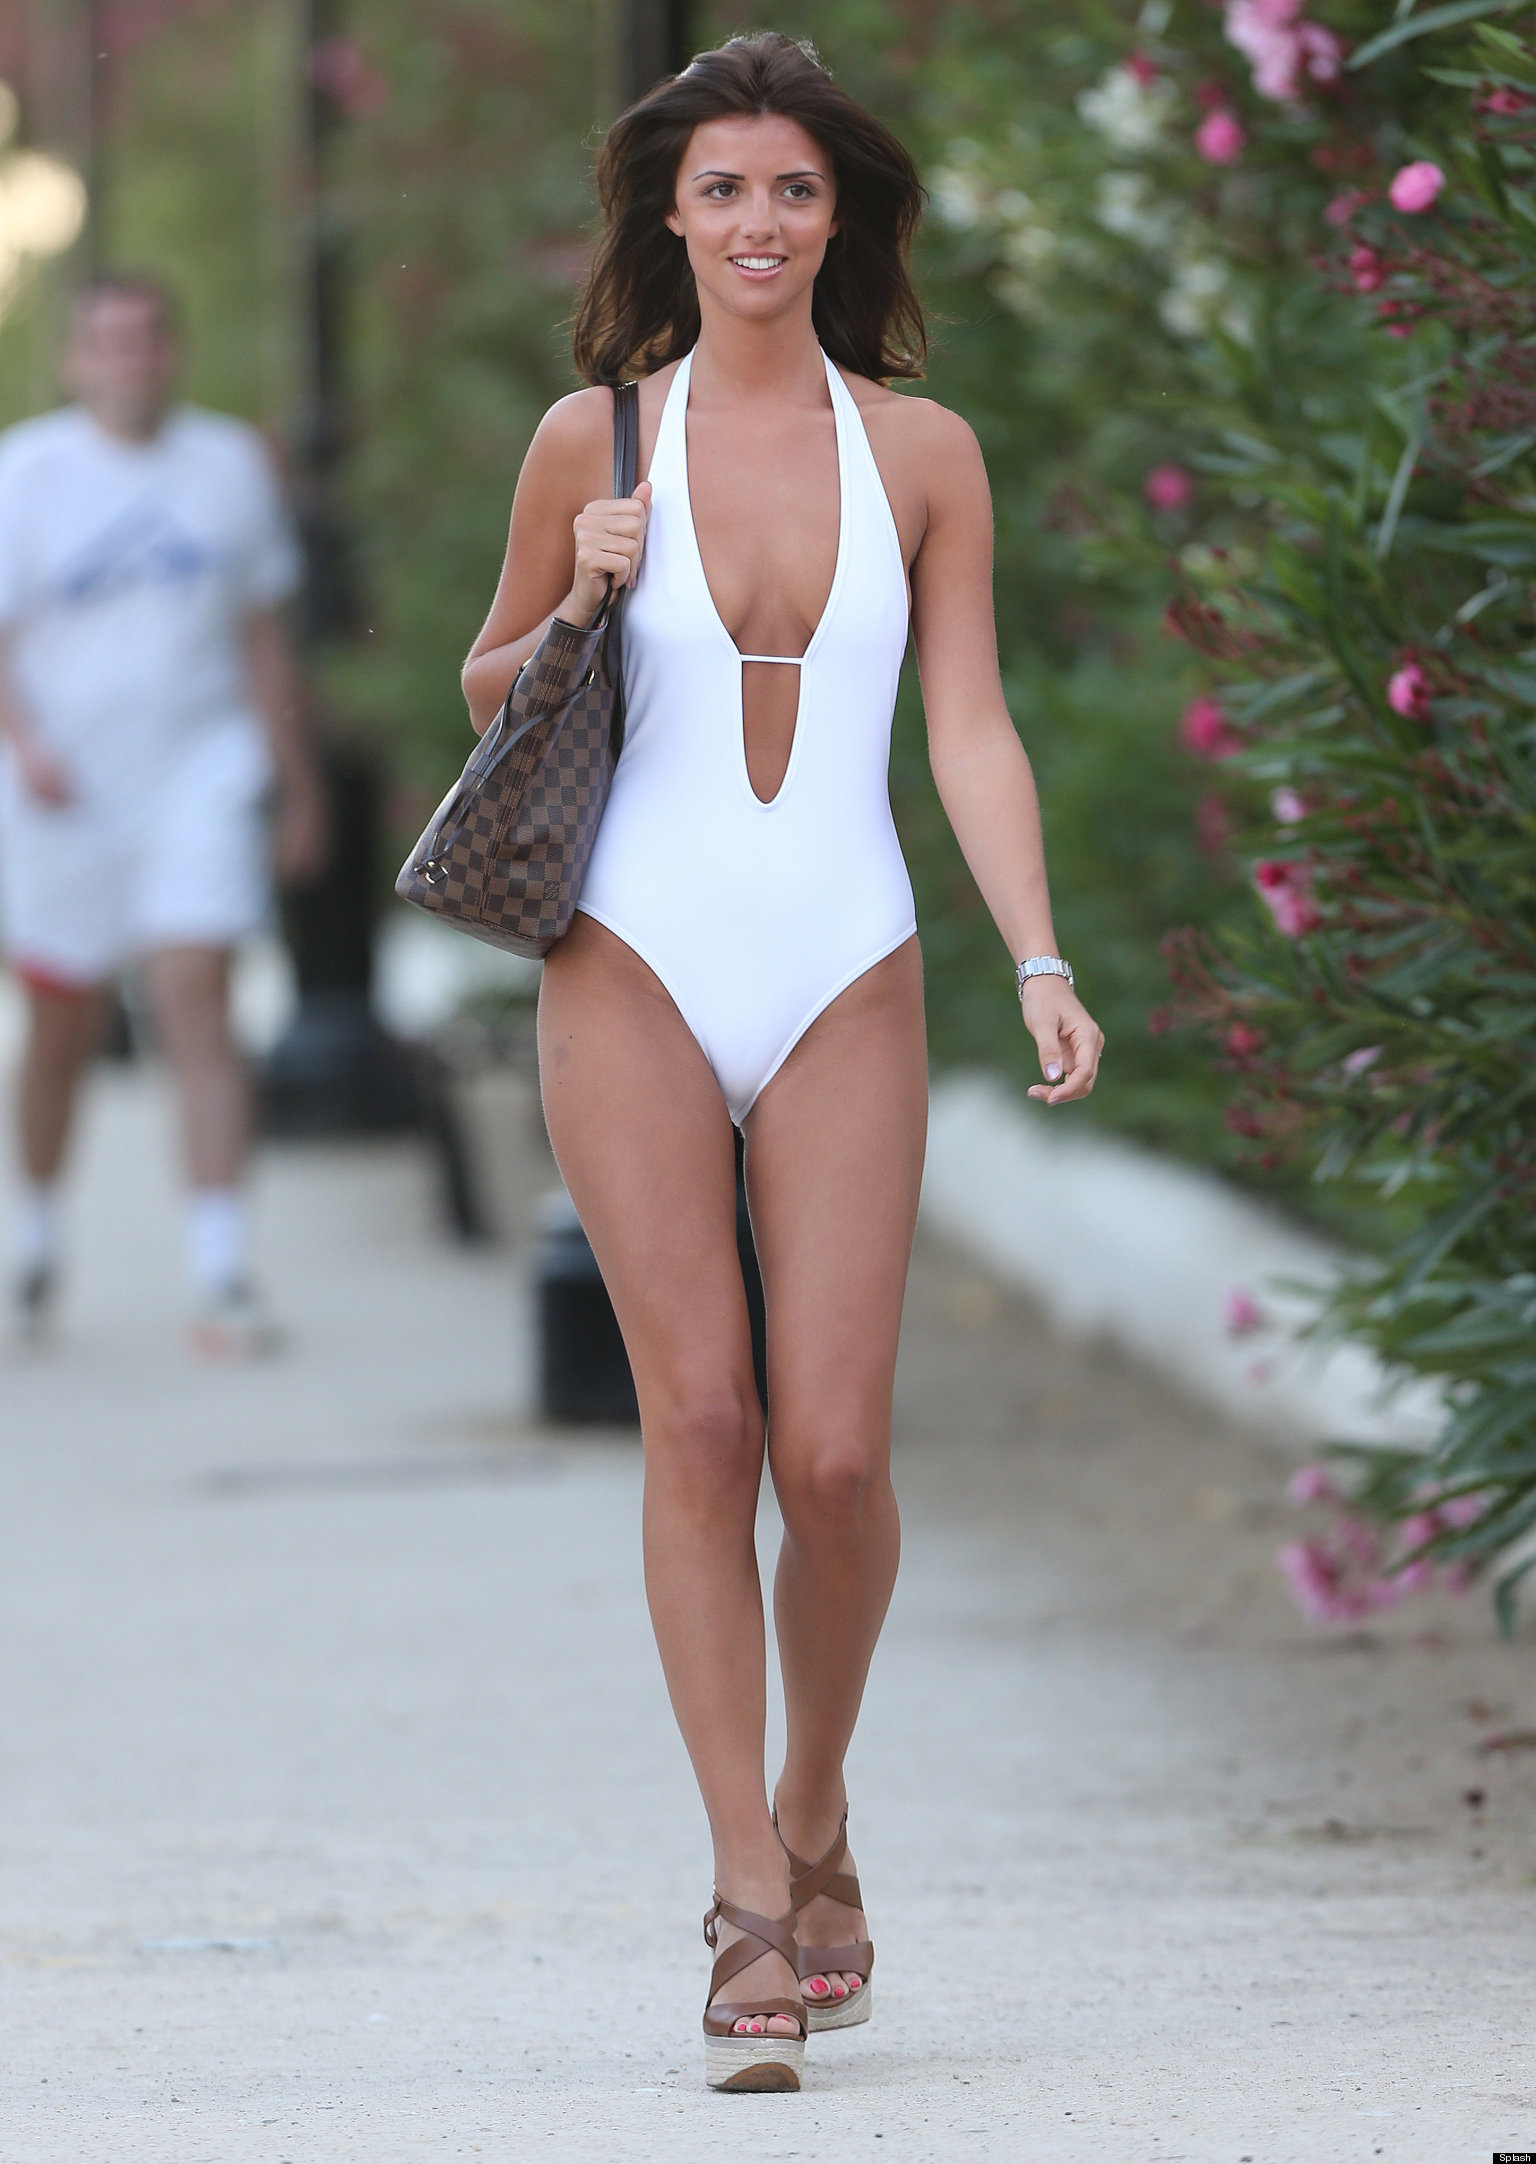 Discussion on this topic: Chantel jeffries in bikini at miami beach, lucy-mecklenburgh-is-sweaty-and-beautiful/